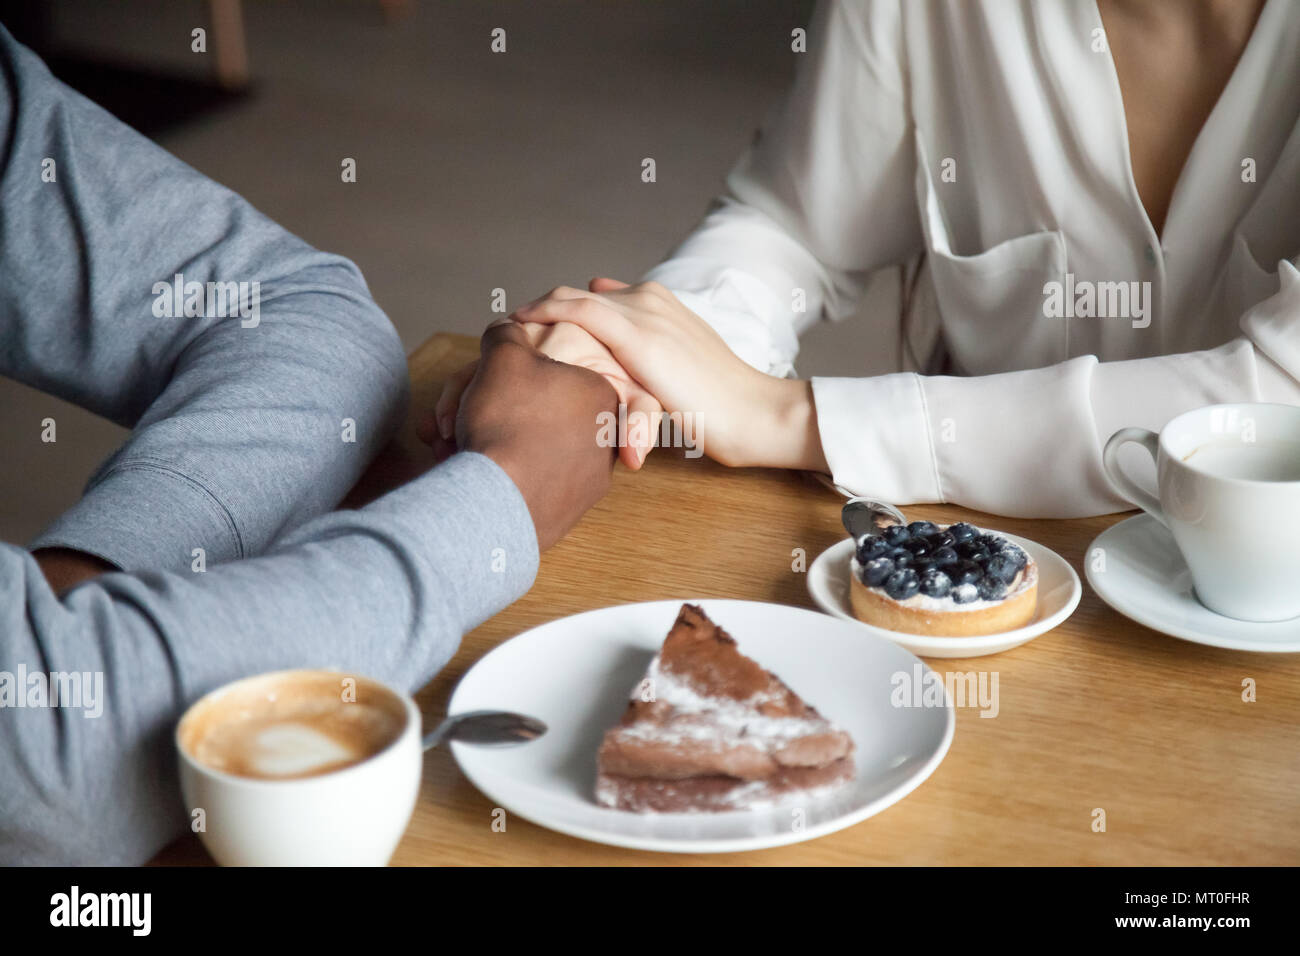 Interracial couple holding hands sitting at cafe table, closeup  - Stock Image